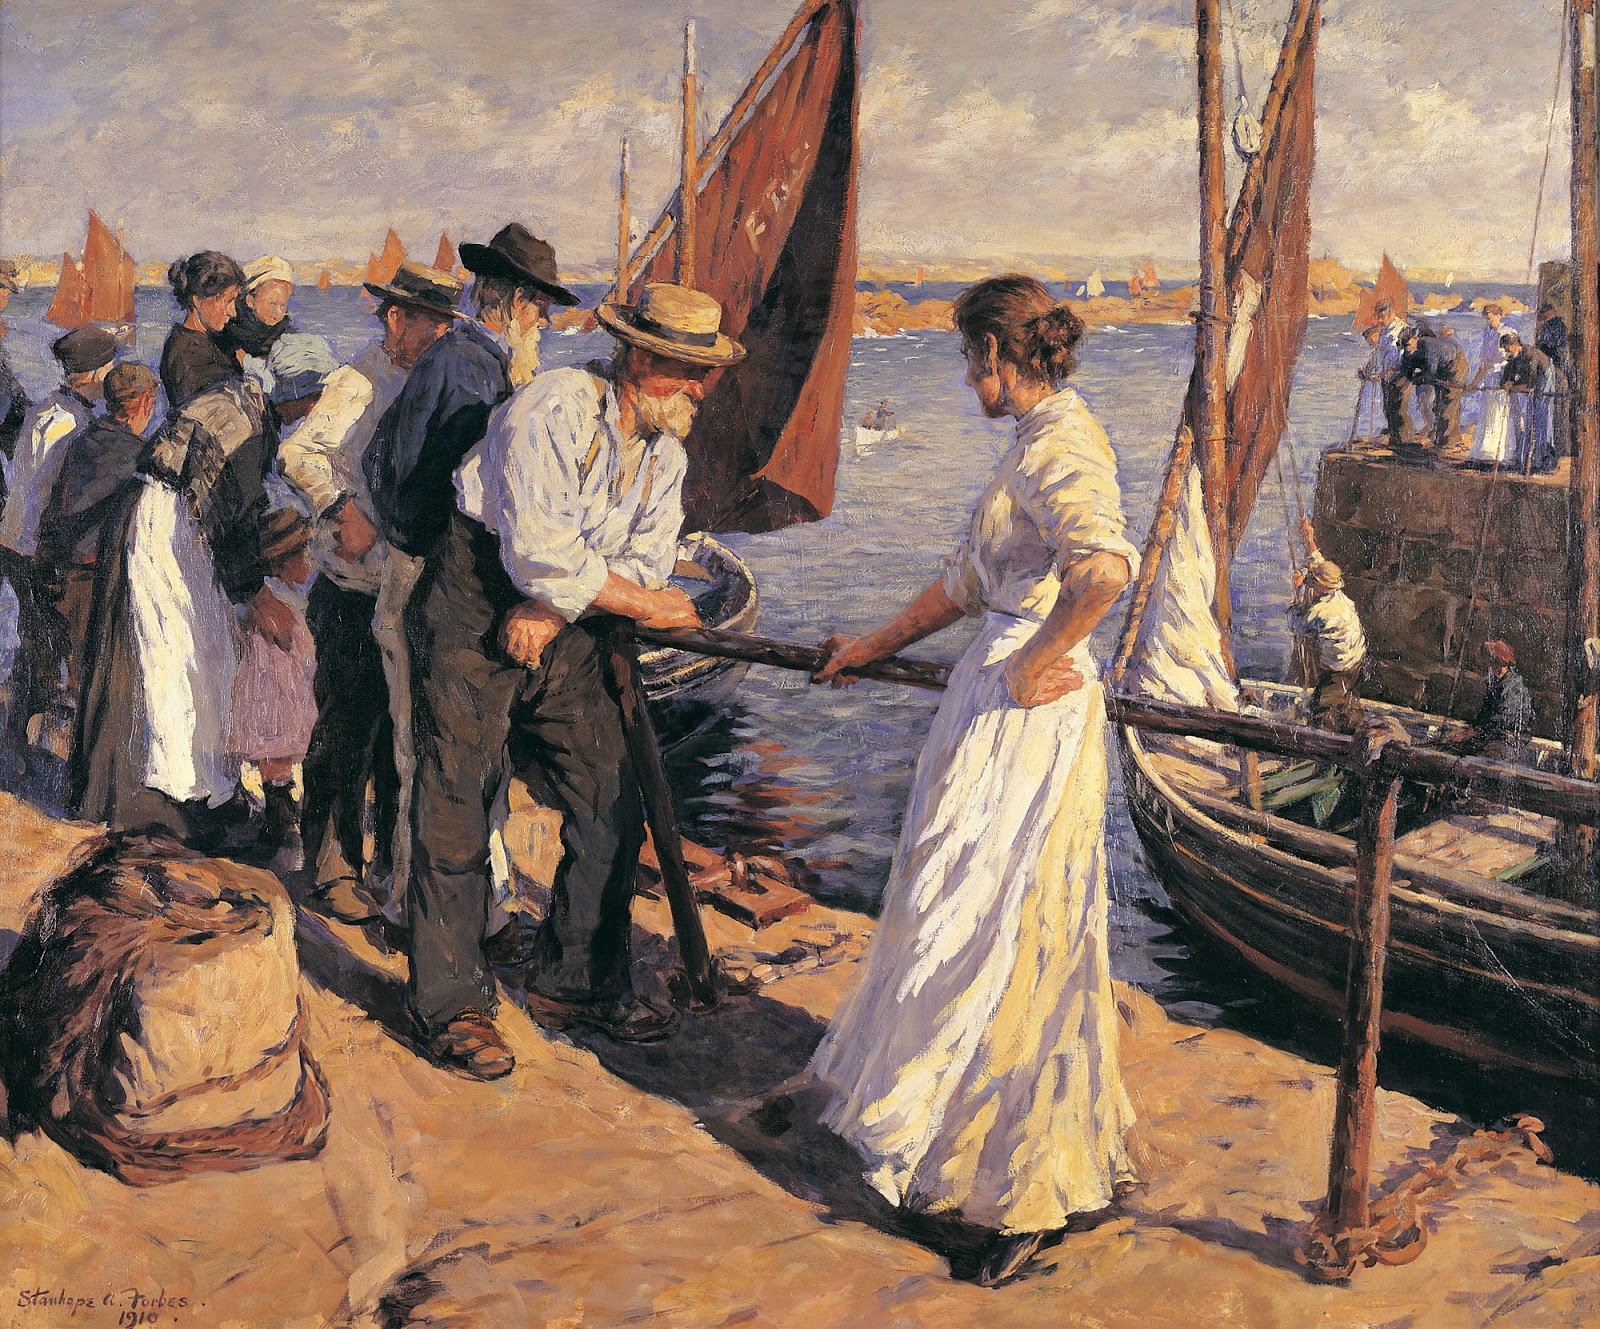 Stanhope Forbes | Plein Air /Genre painter